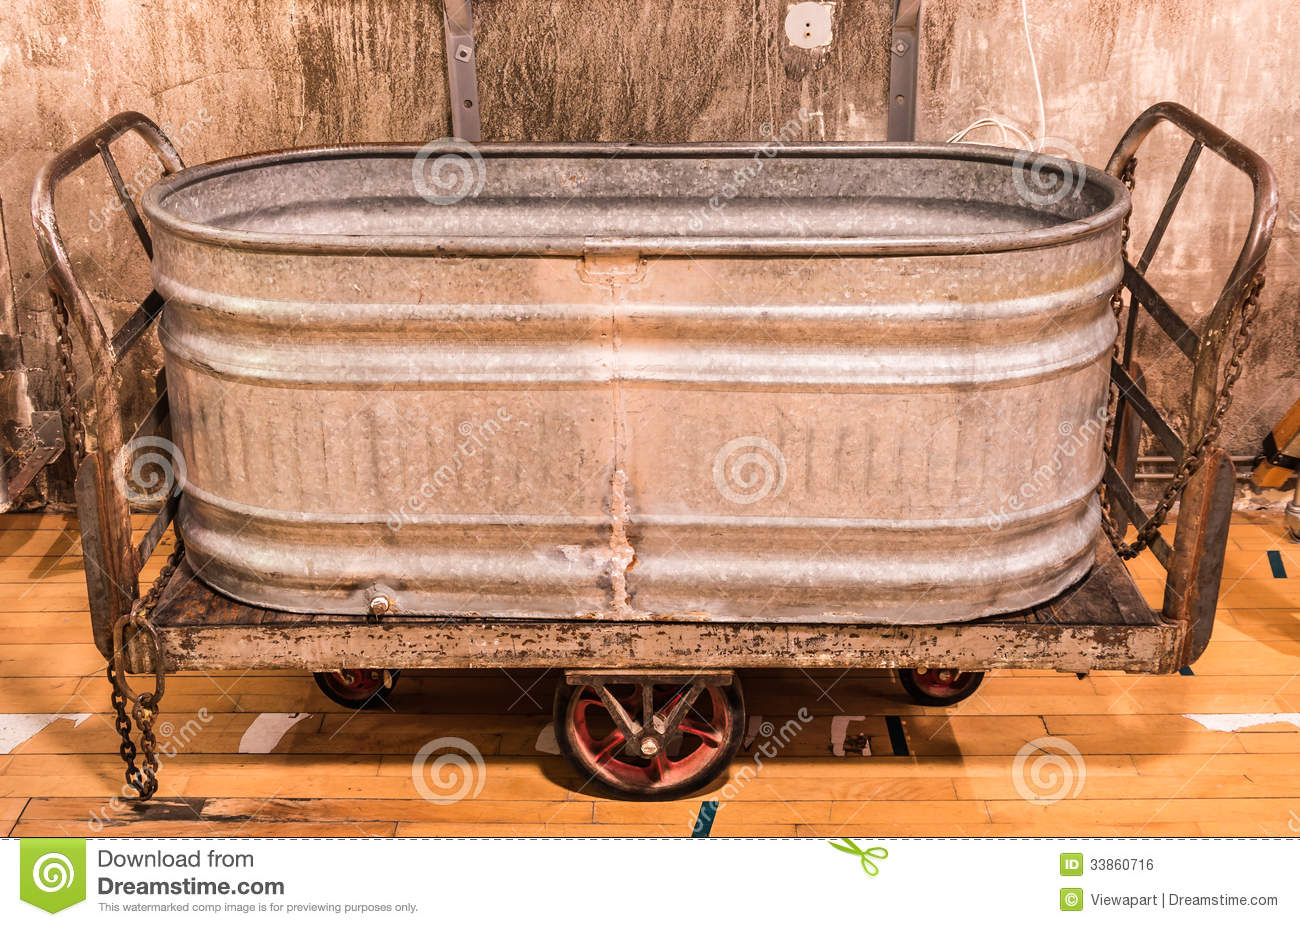 Vintage Bathtub On A Wooden Floor